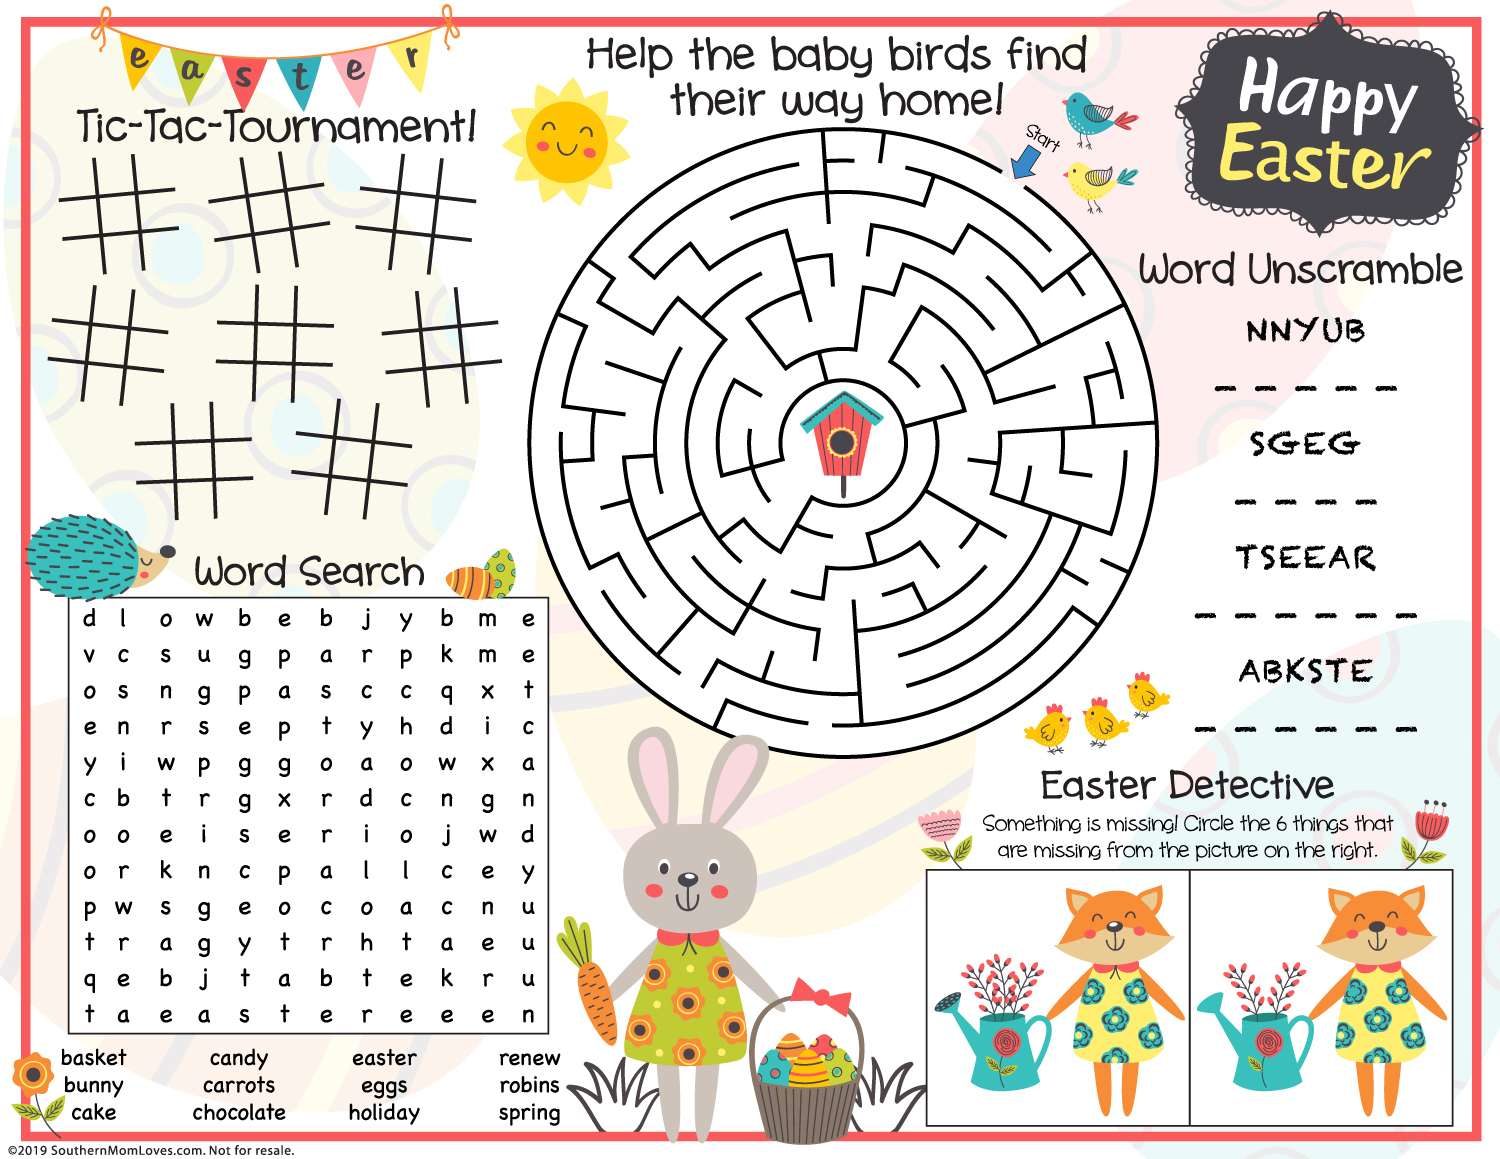 Southern Mom Loves Printable Easter Game Placemats For